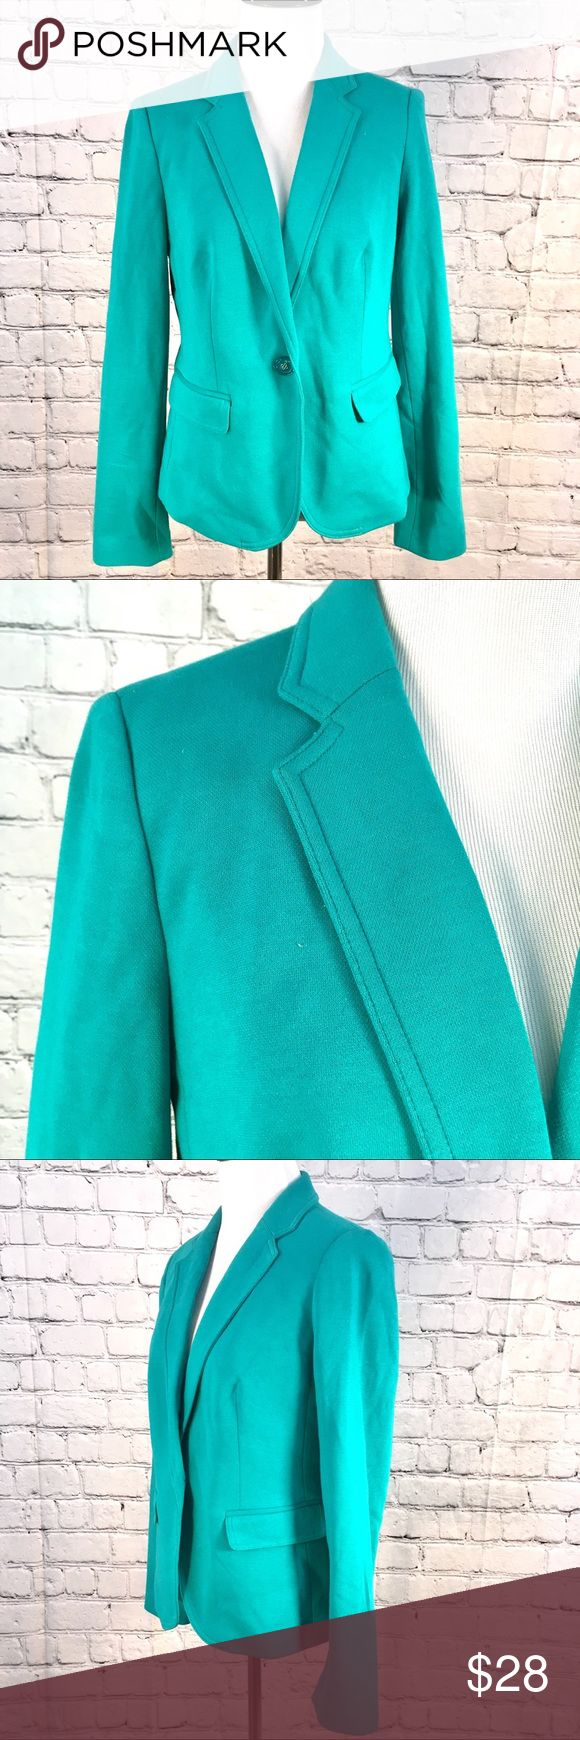 The Limited turquoise blazer S Excellent condition The Limited Jackets & Coats Blazers